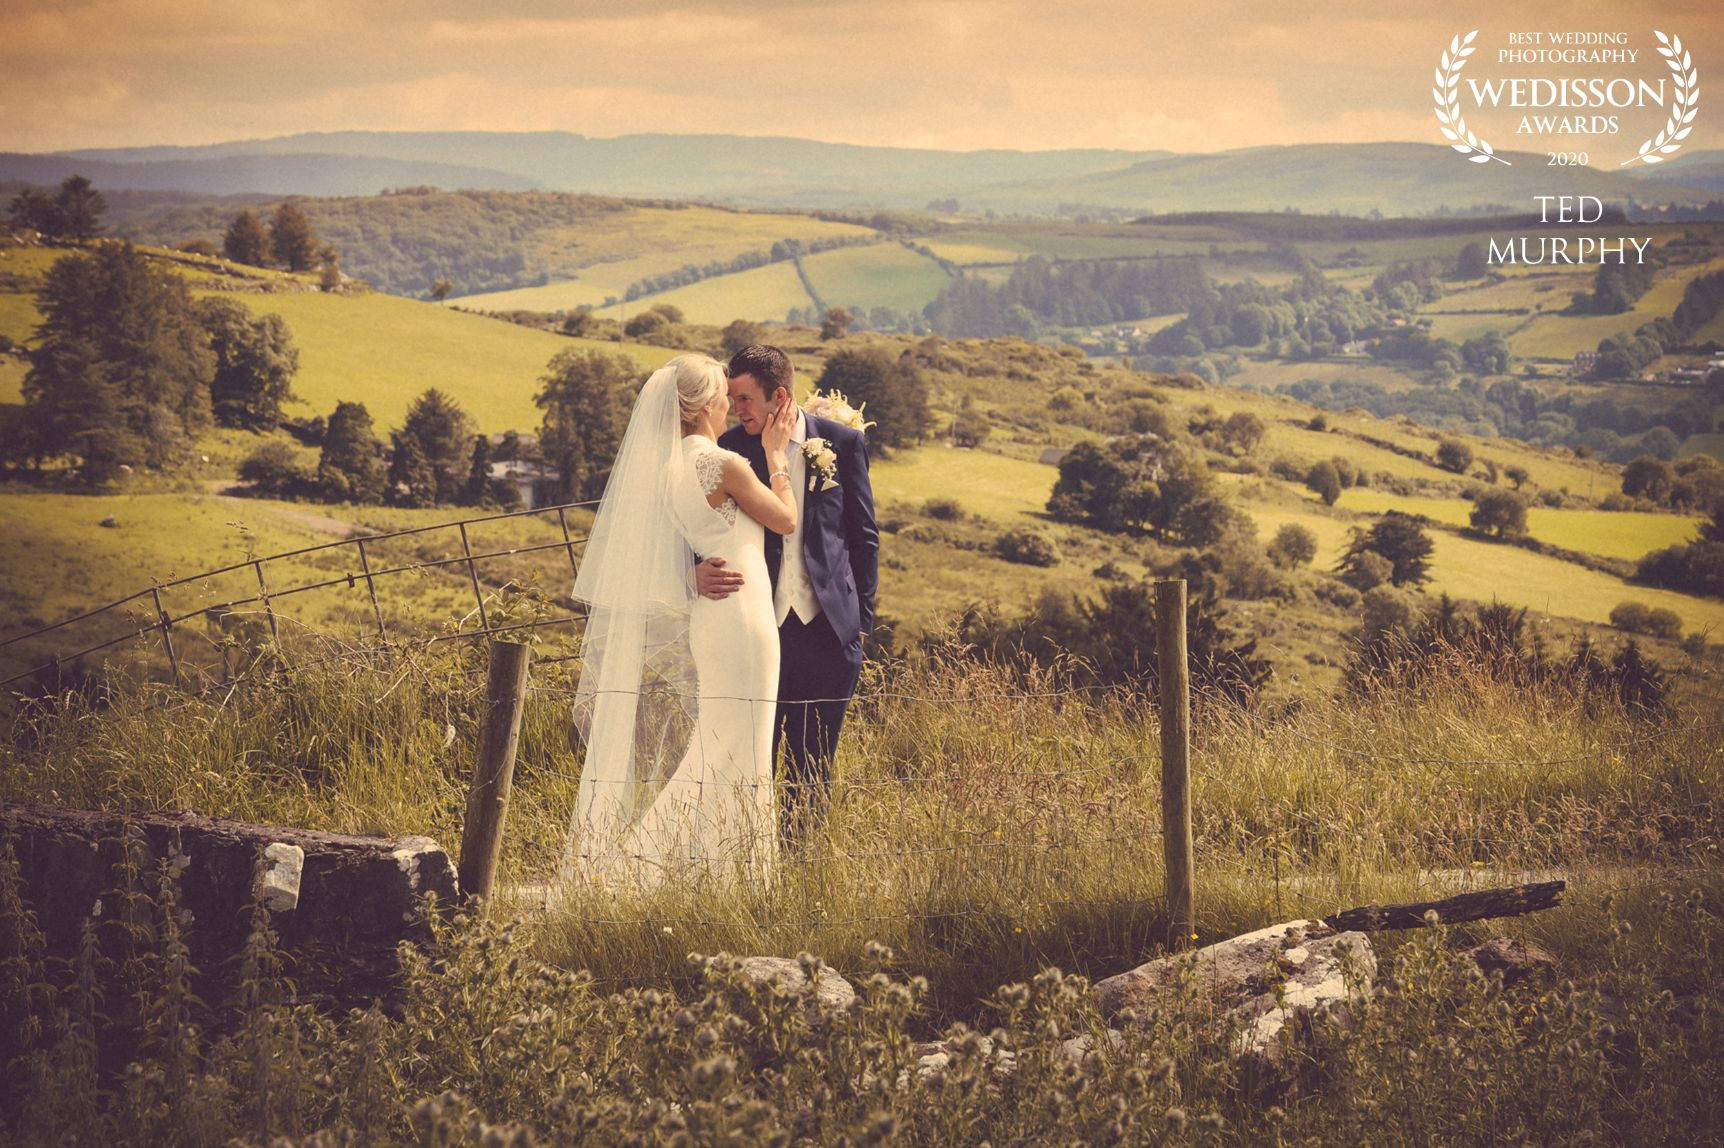 Couple wedding photoshoot by Ted Murphy